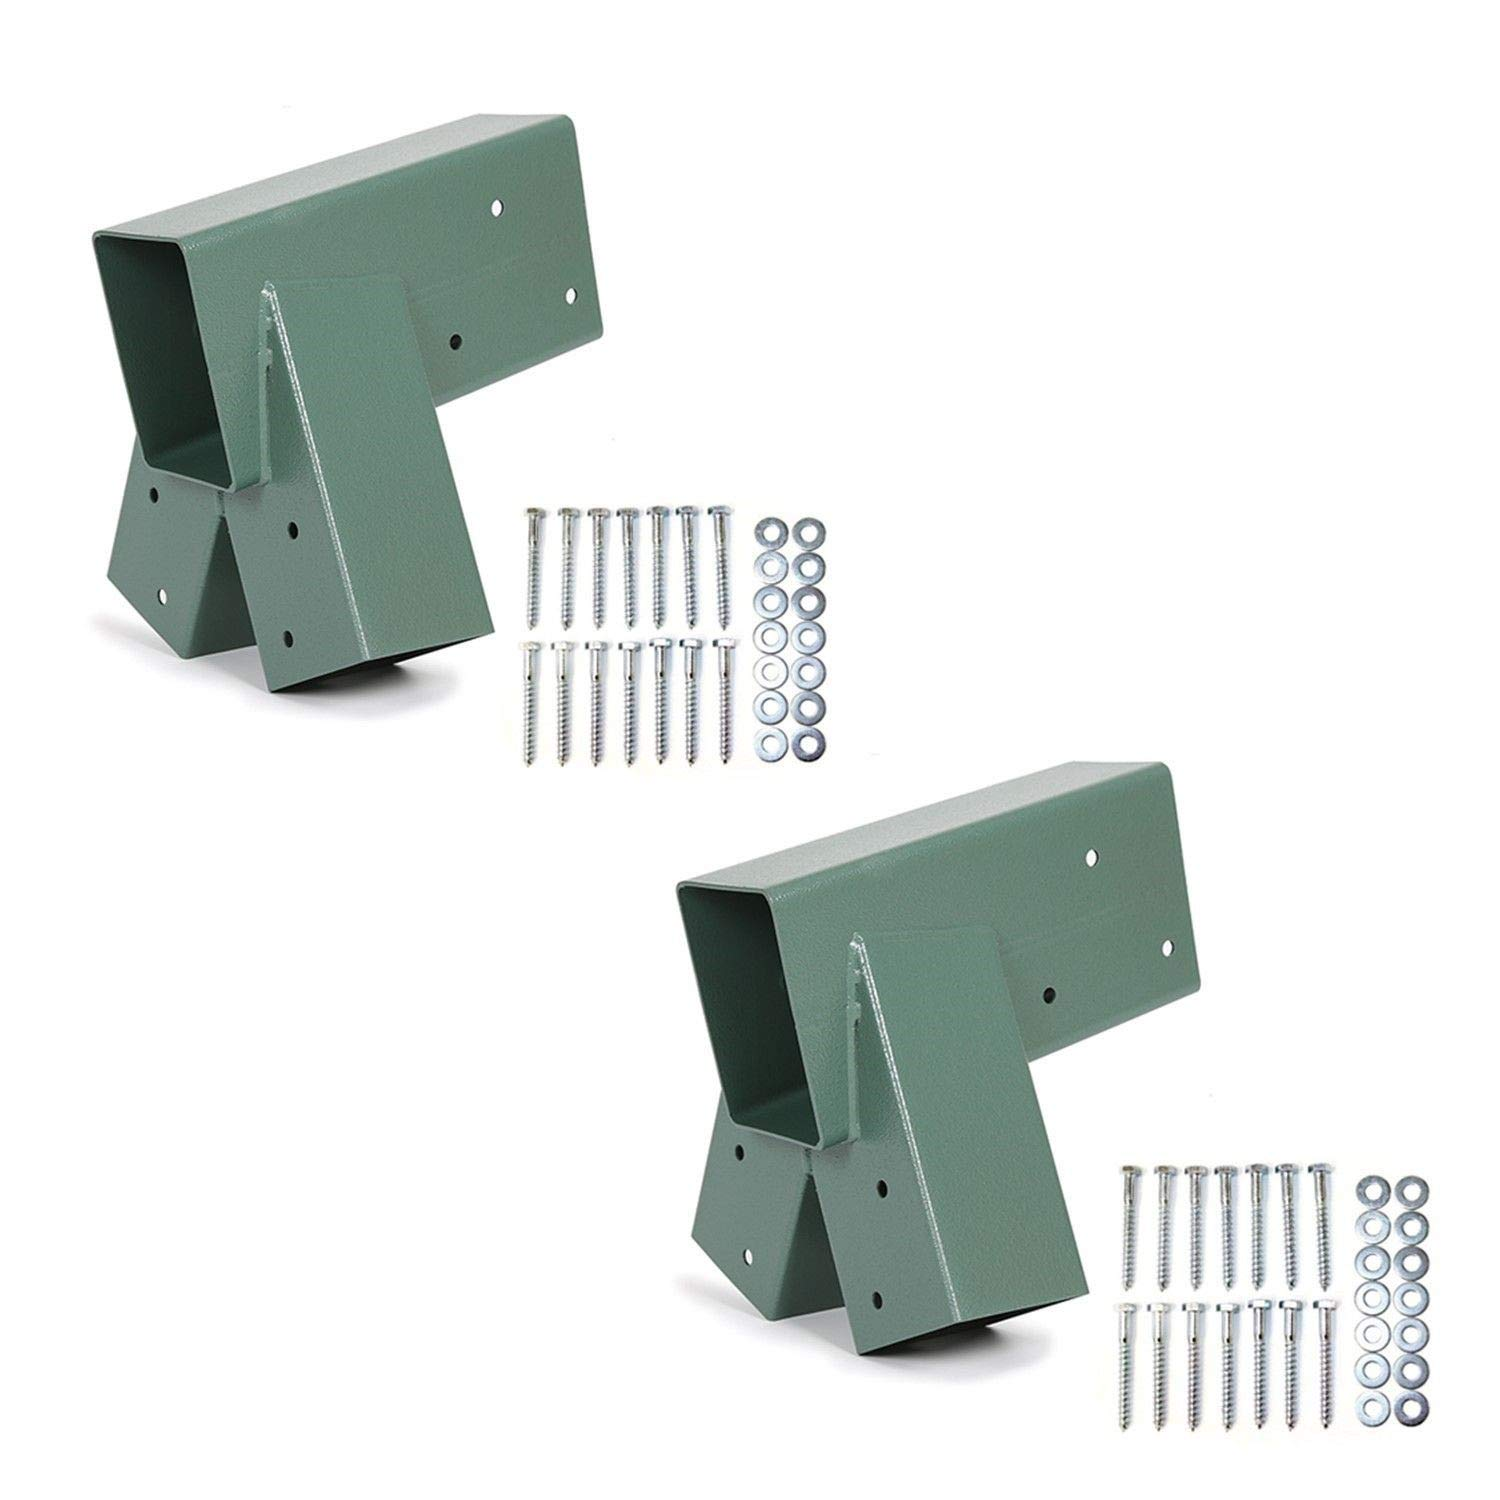 ECOTRIC Easy Install 1-2-3 Heavy Duty Steel A-Frame Swing Set Mounting Bracket Green, All Hardware Include (2 Brackets) by ECOTRIC